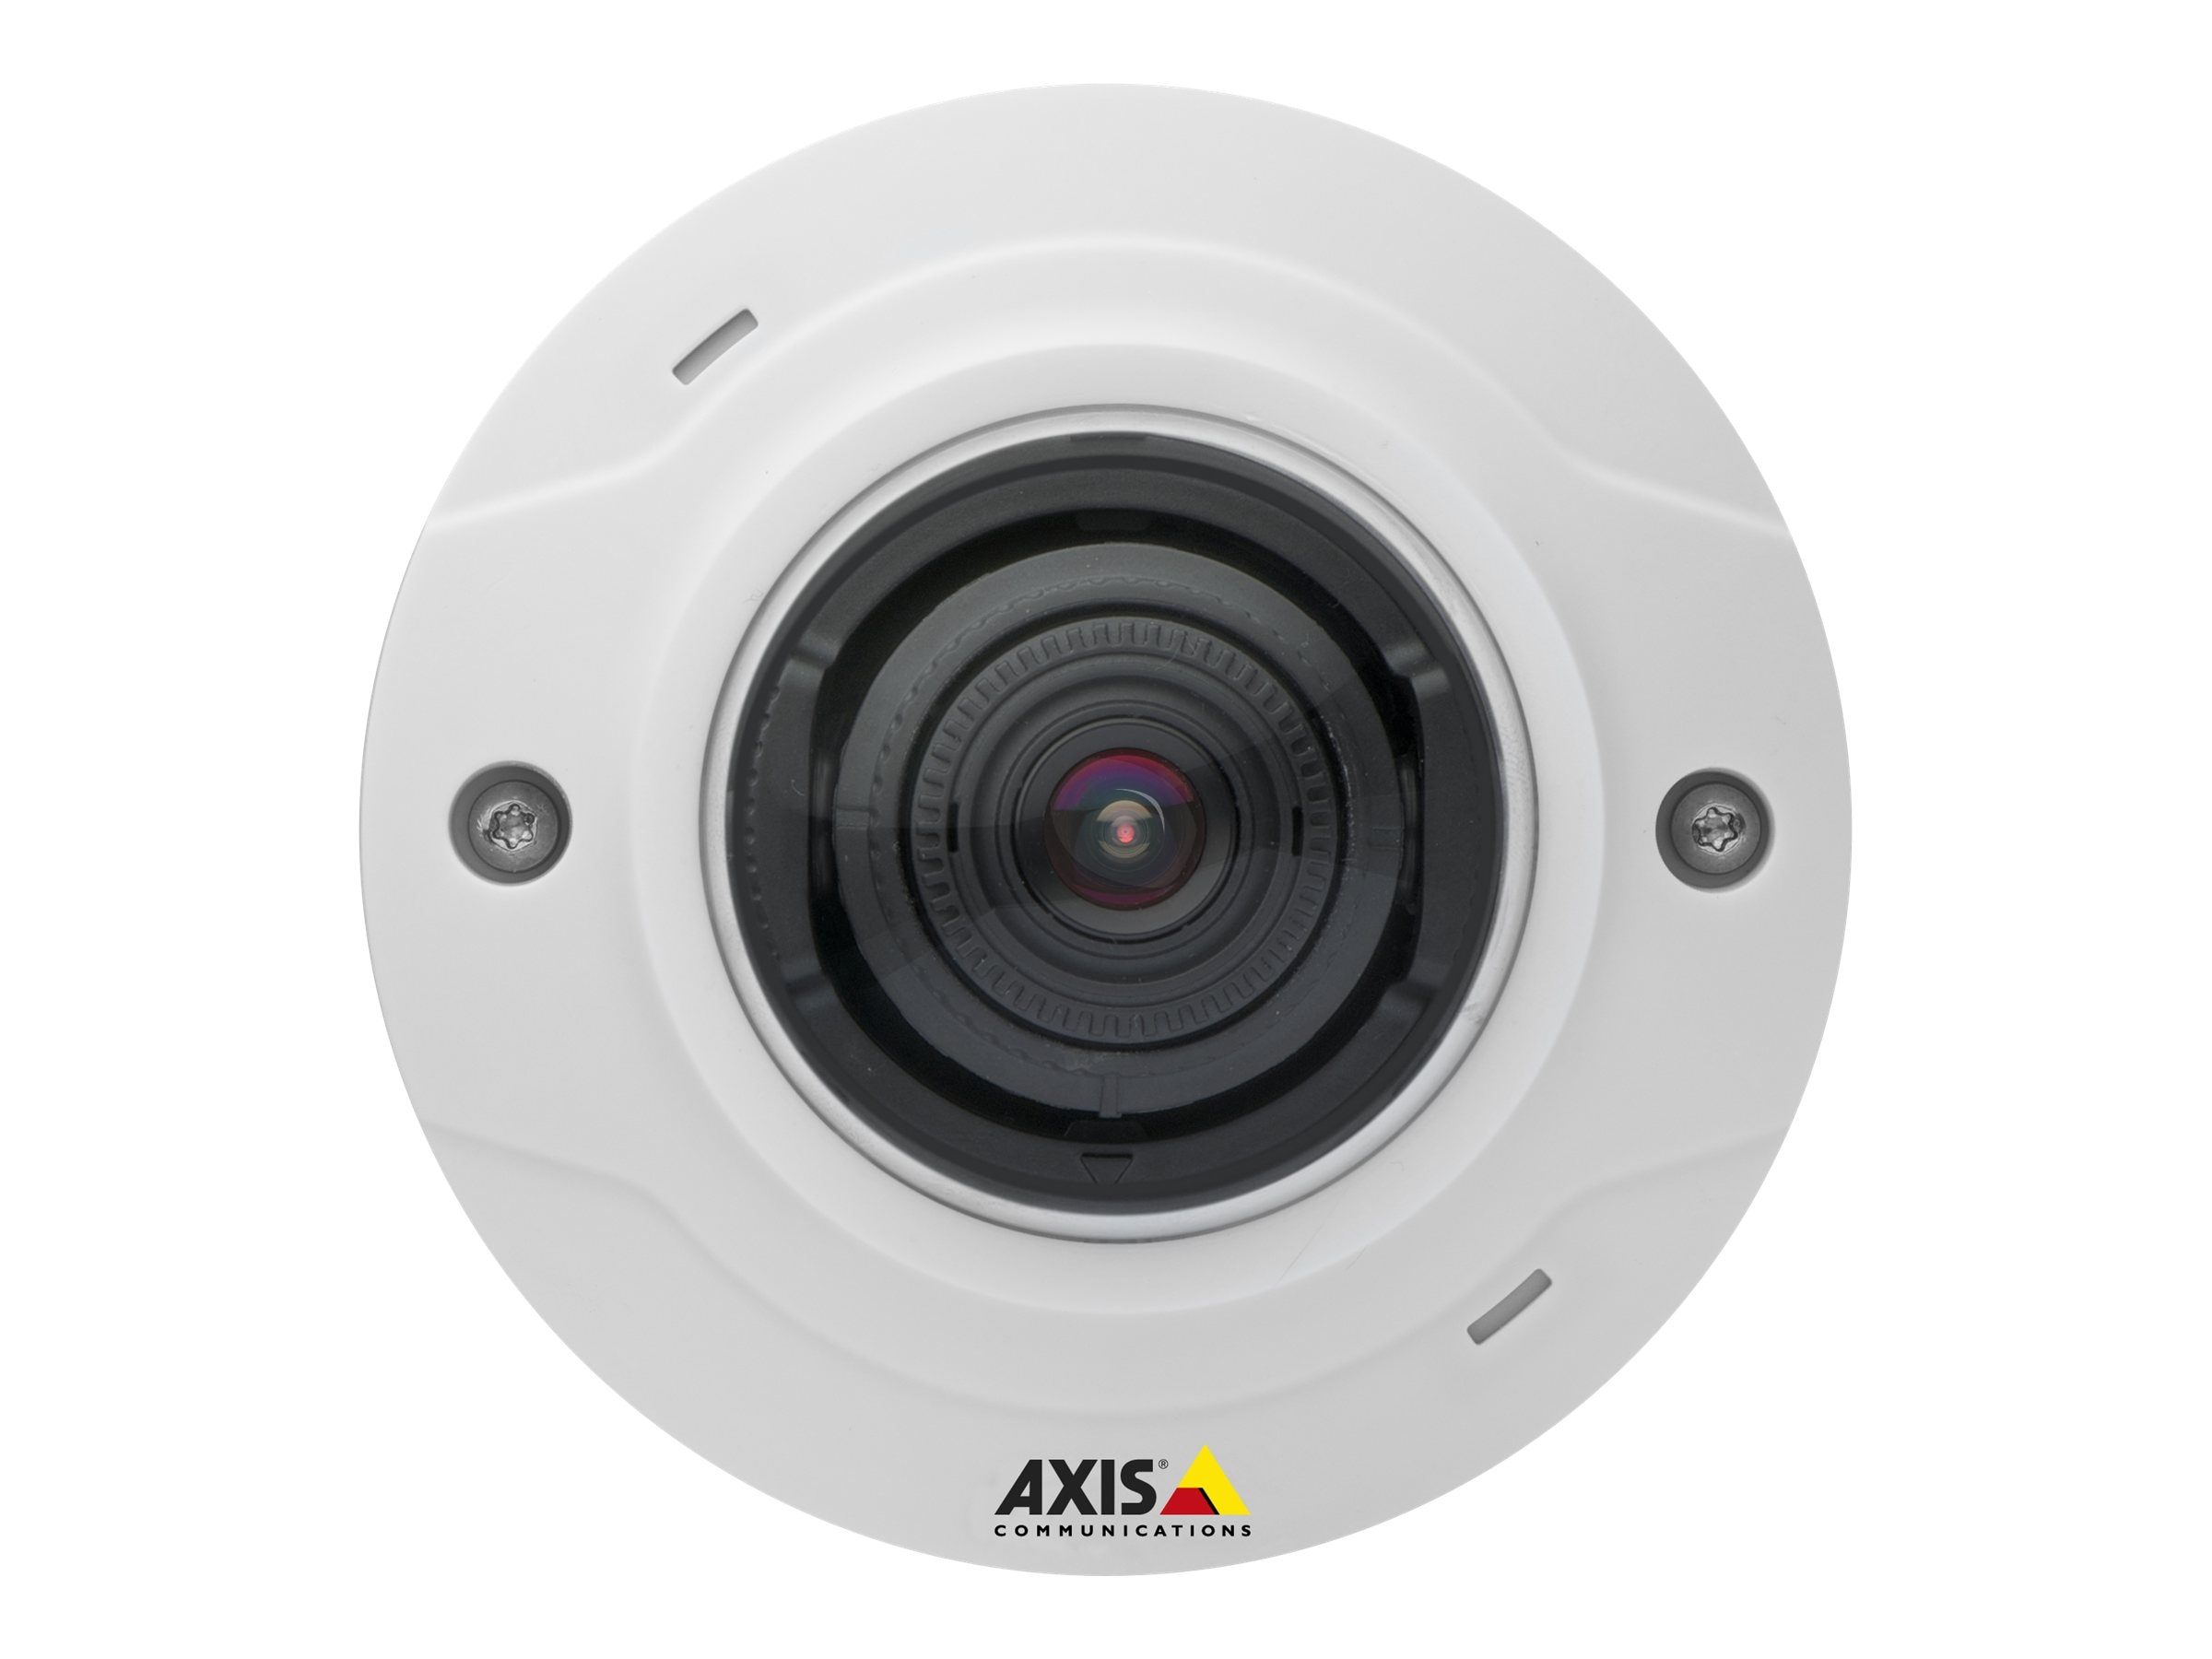 Axis M3005-V Network Camera, Compact Indoor Mini Dome